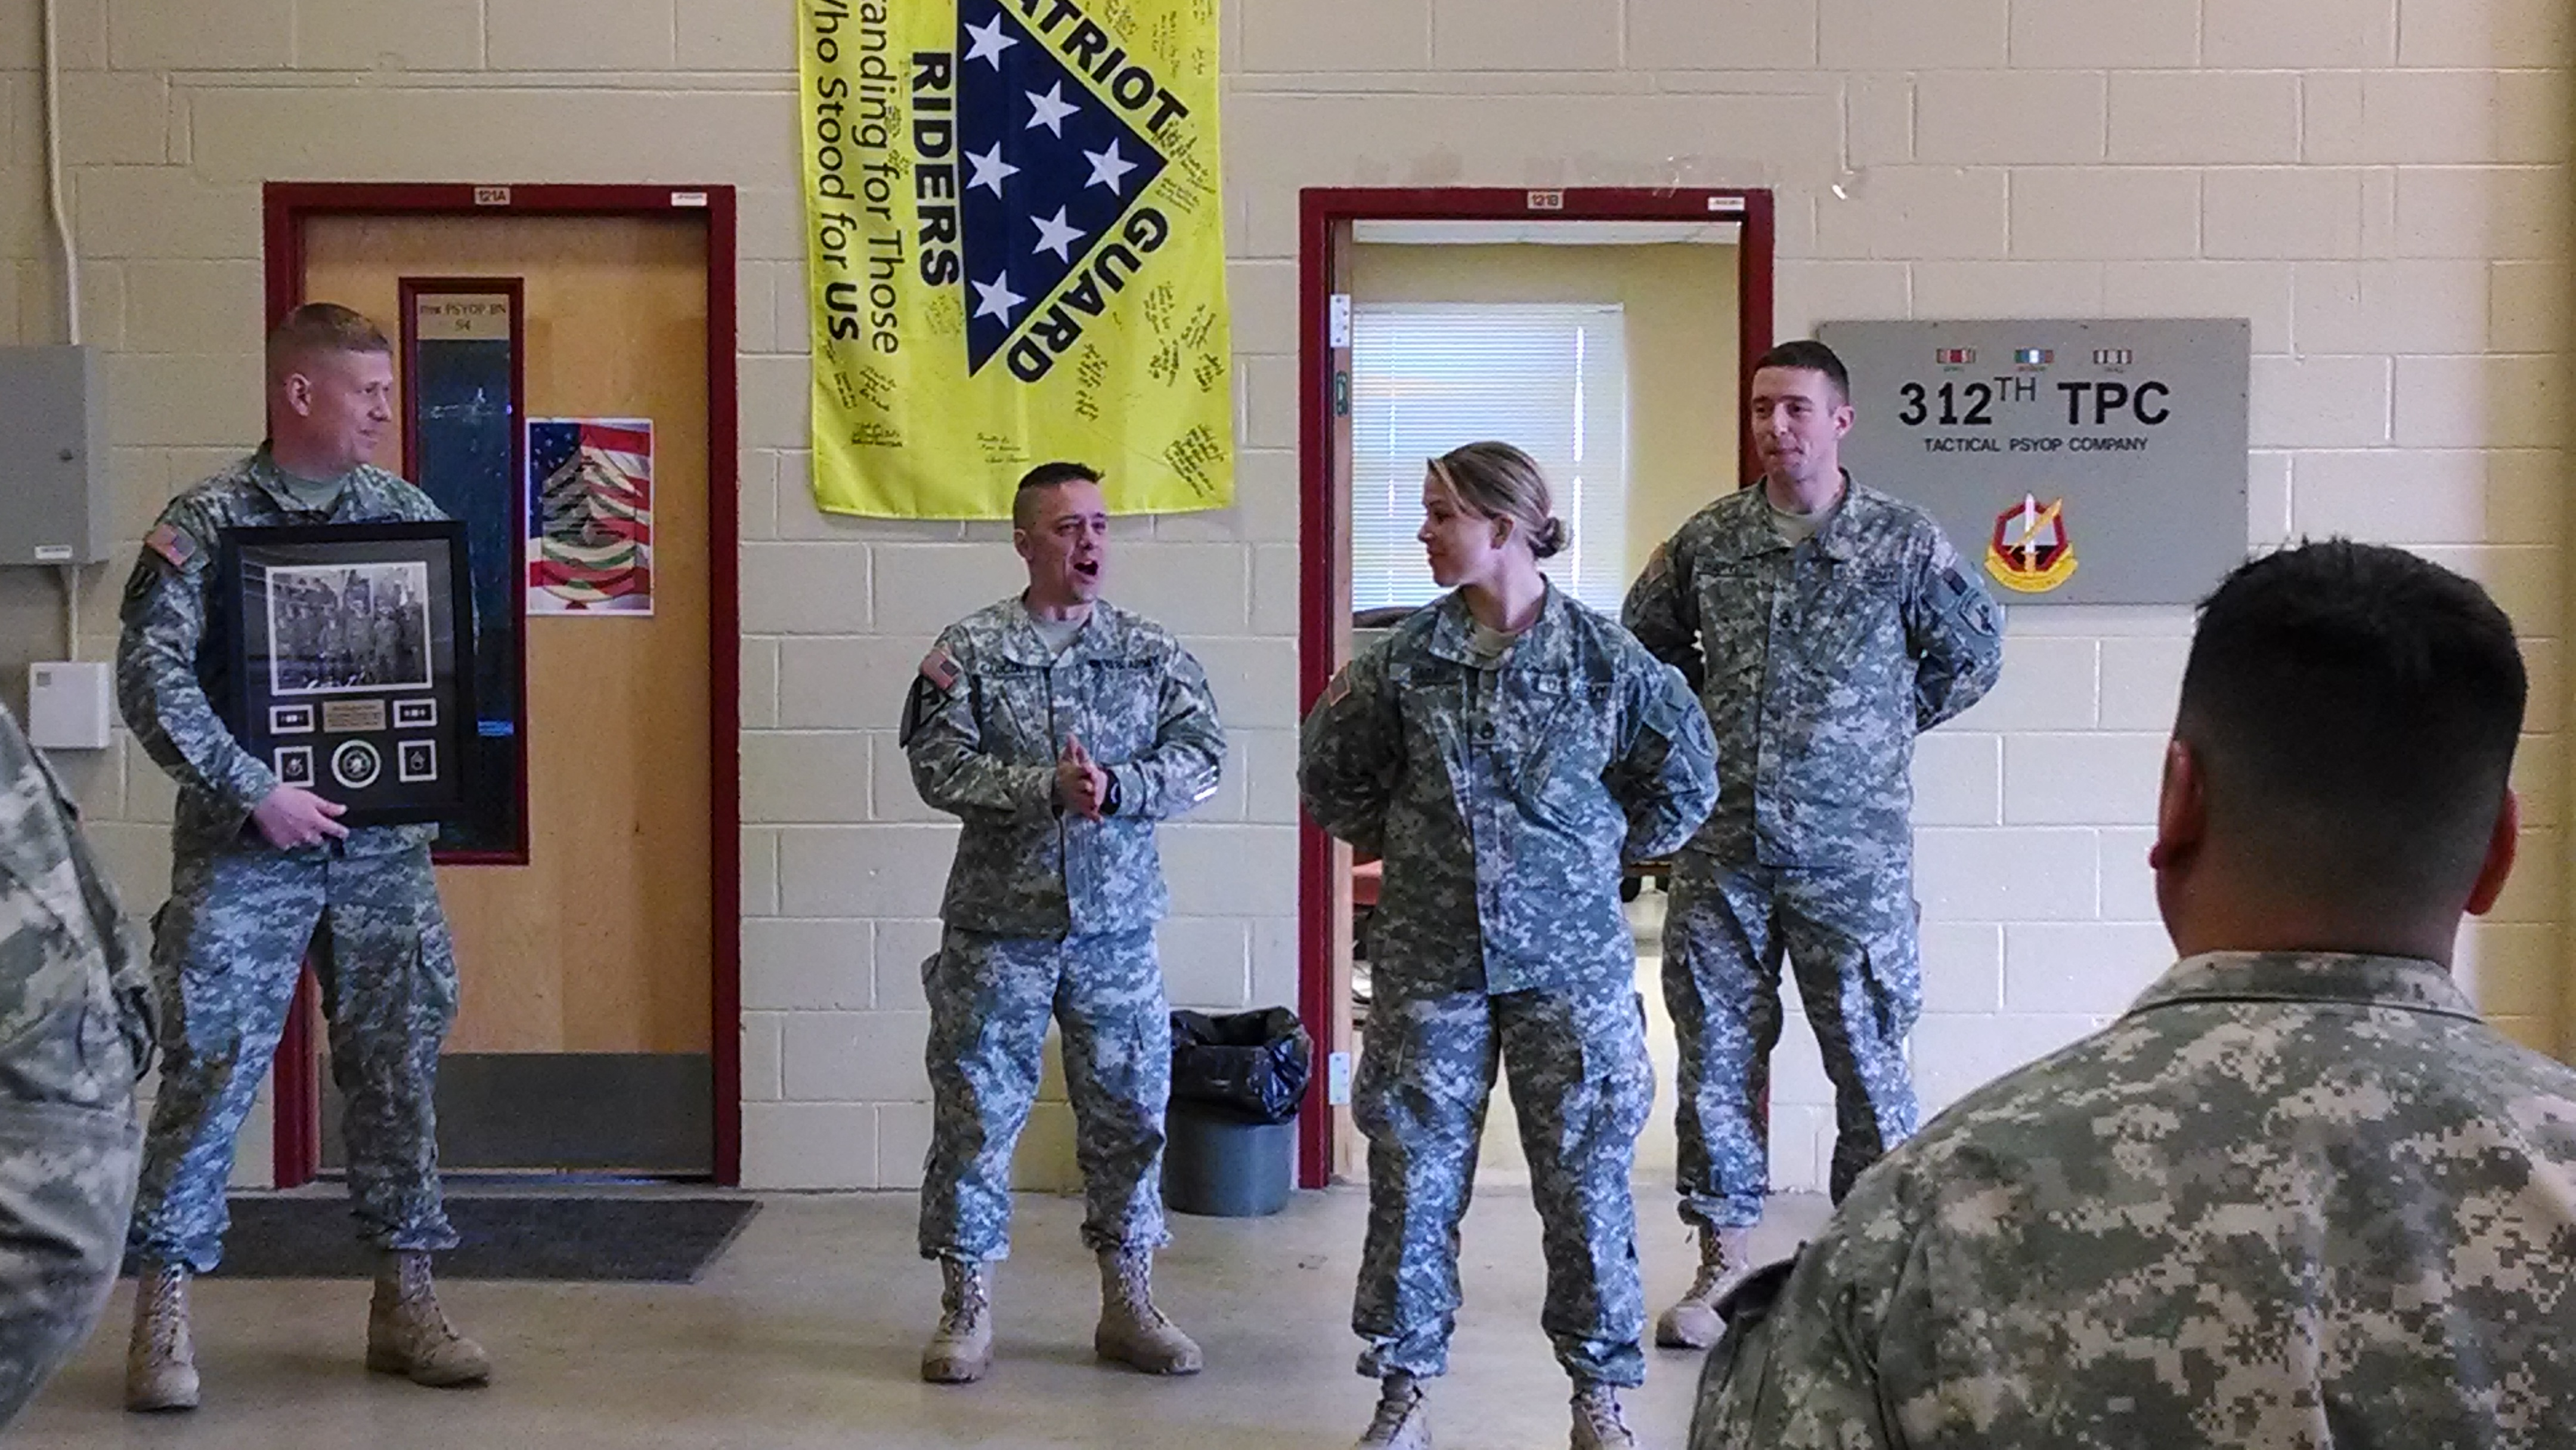 Virginia psyops ets ceremony military memories and more the look on their face when they see our certificate frames and shadow box displays are priceless every display we make comes with honor and pride jeuxipadfo Images